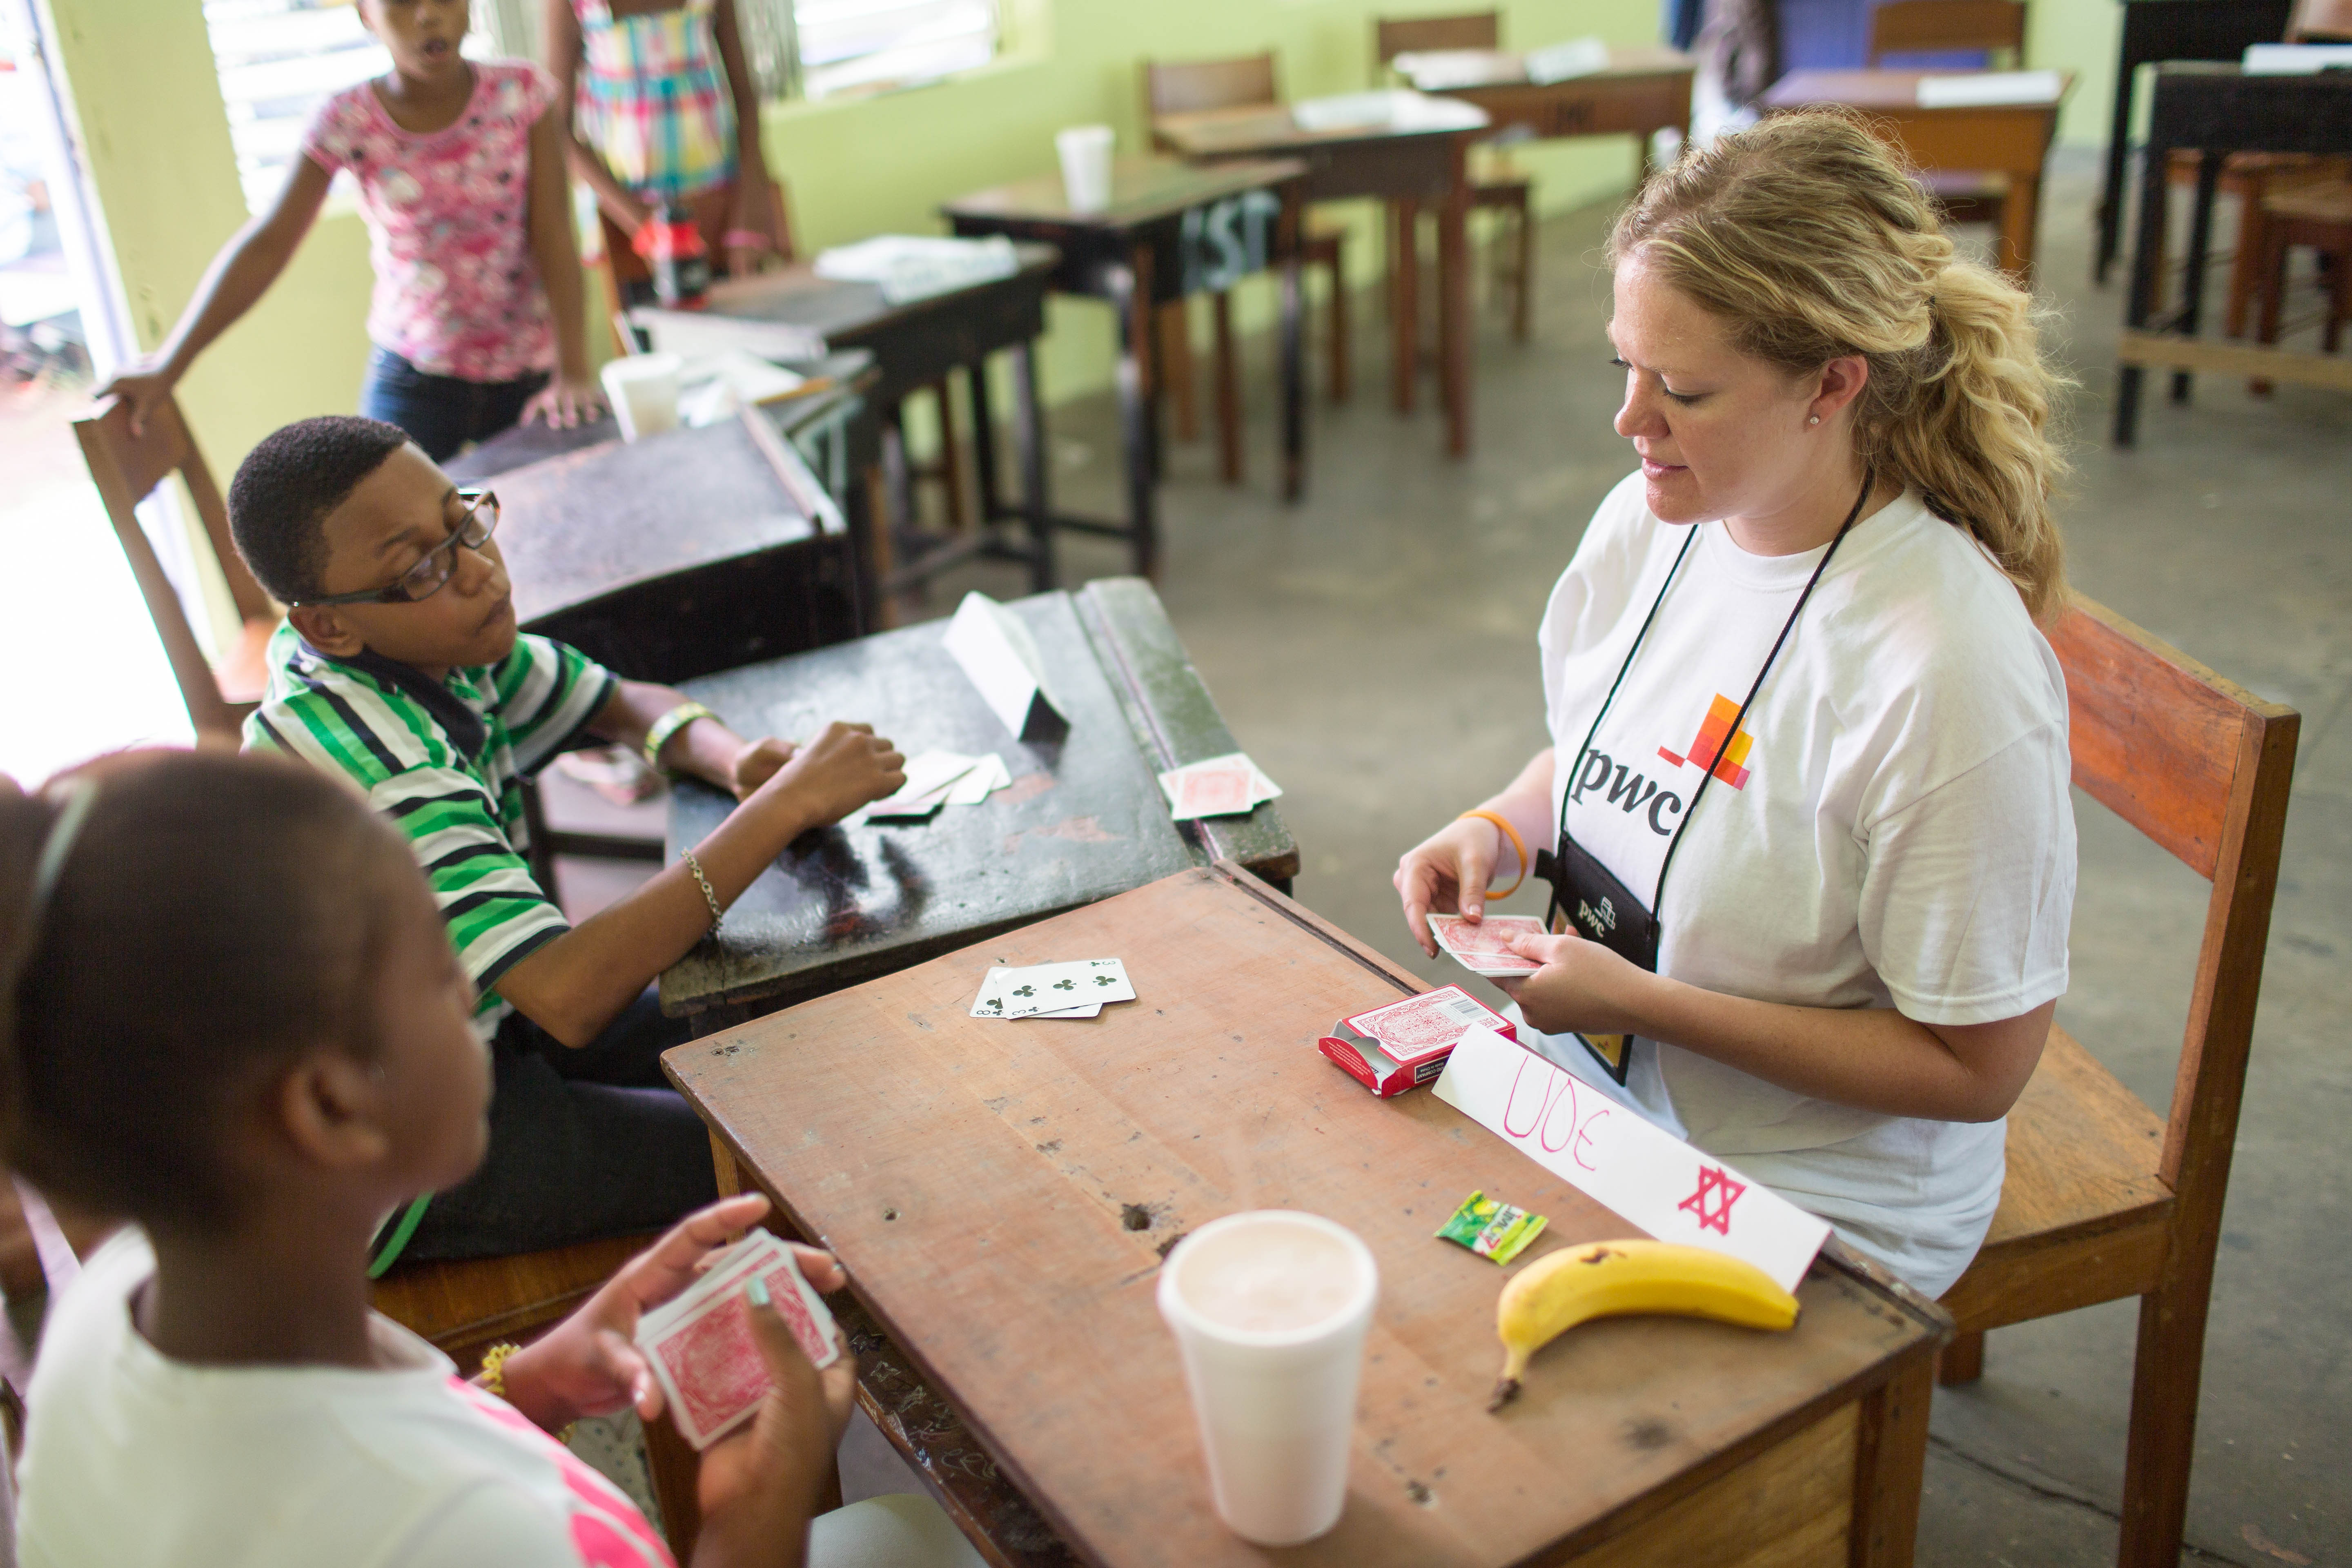 As part of its corporate social responsibility programs, PricewaterhouseCoopers (PwC), a consulting firm, sends partners, staff and interns to teach financial literacy in Belize. Project Belize is part of a program that integrates financial literacy and e